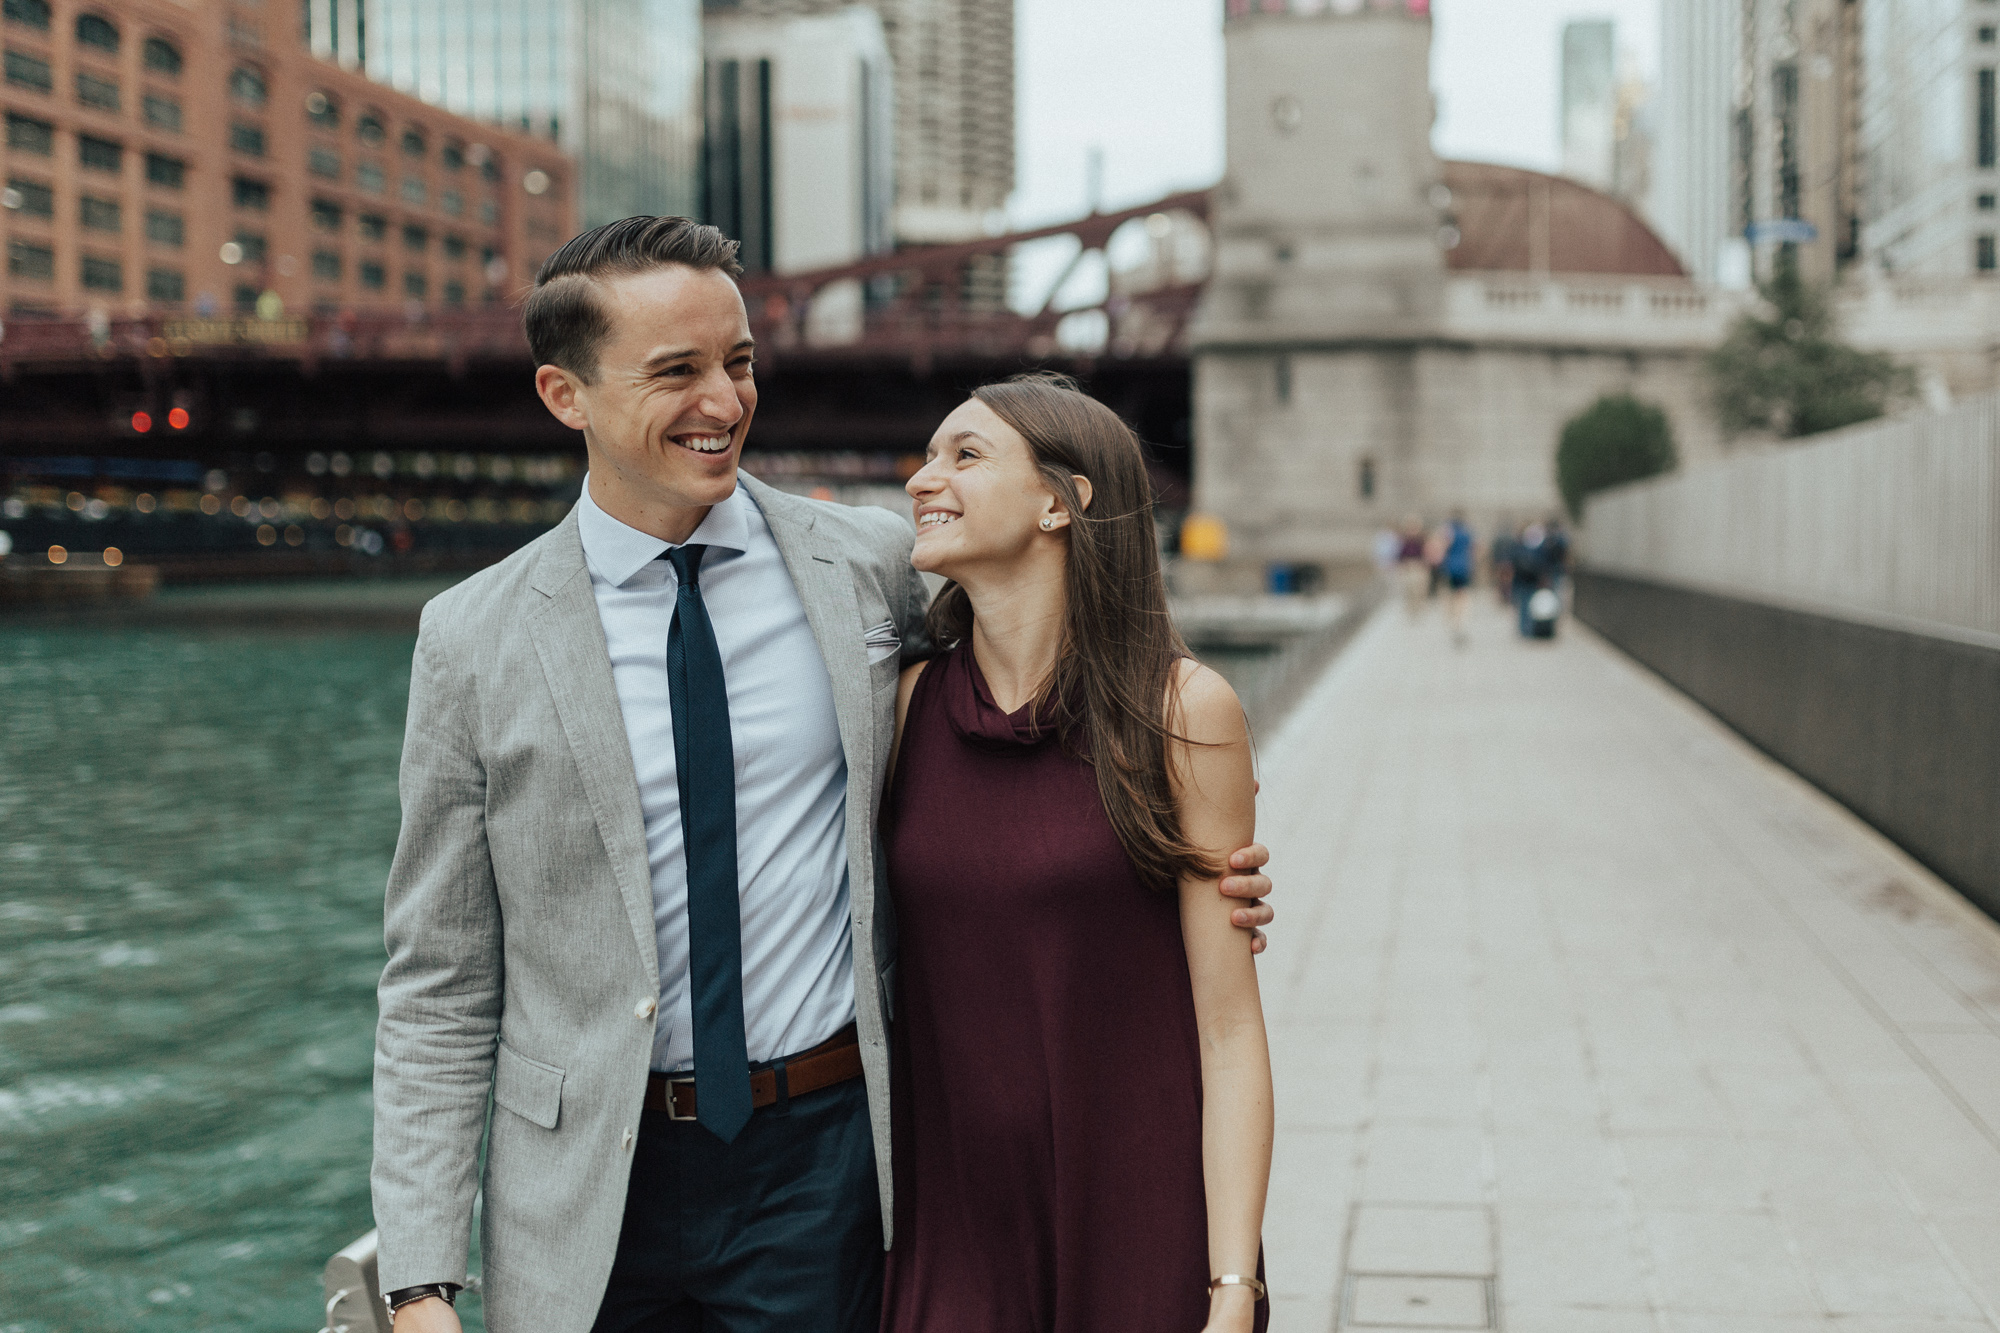 chicago_engagement_photography-0119.jpg